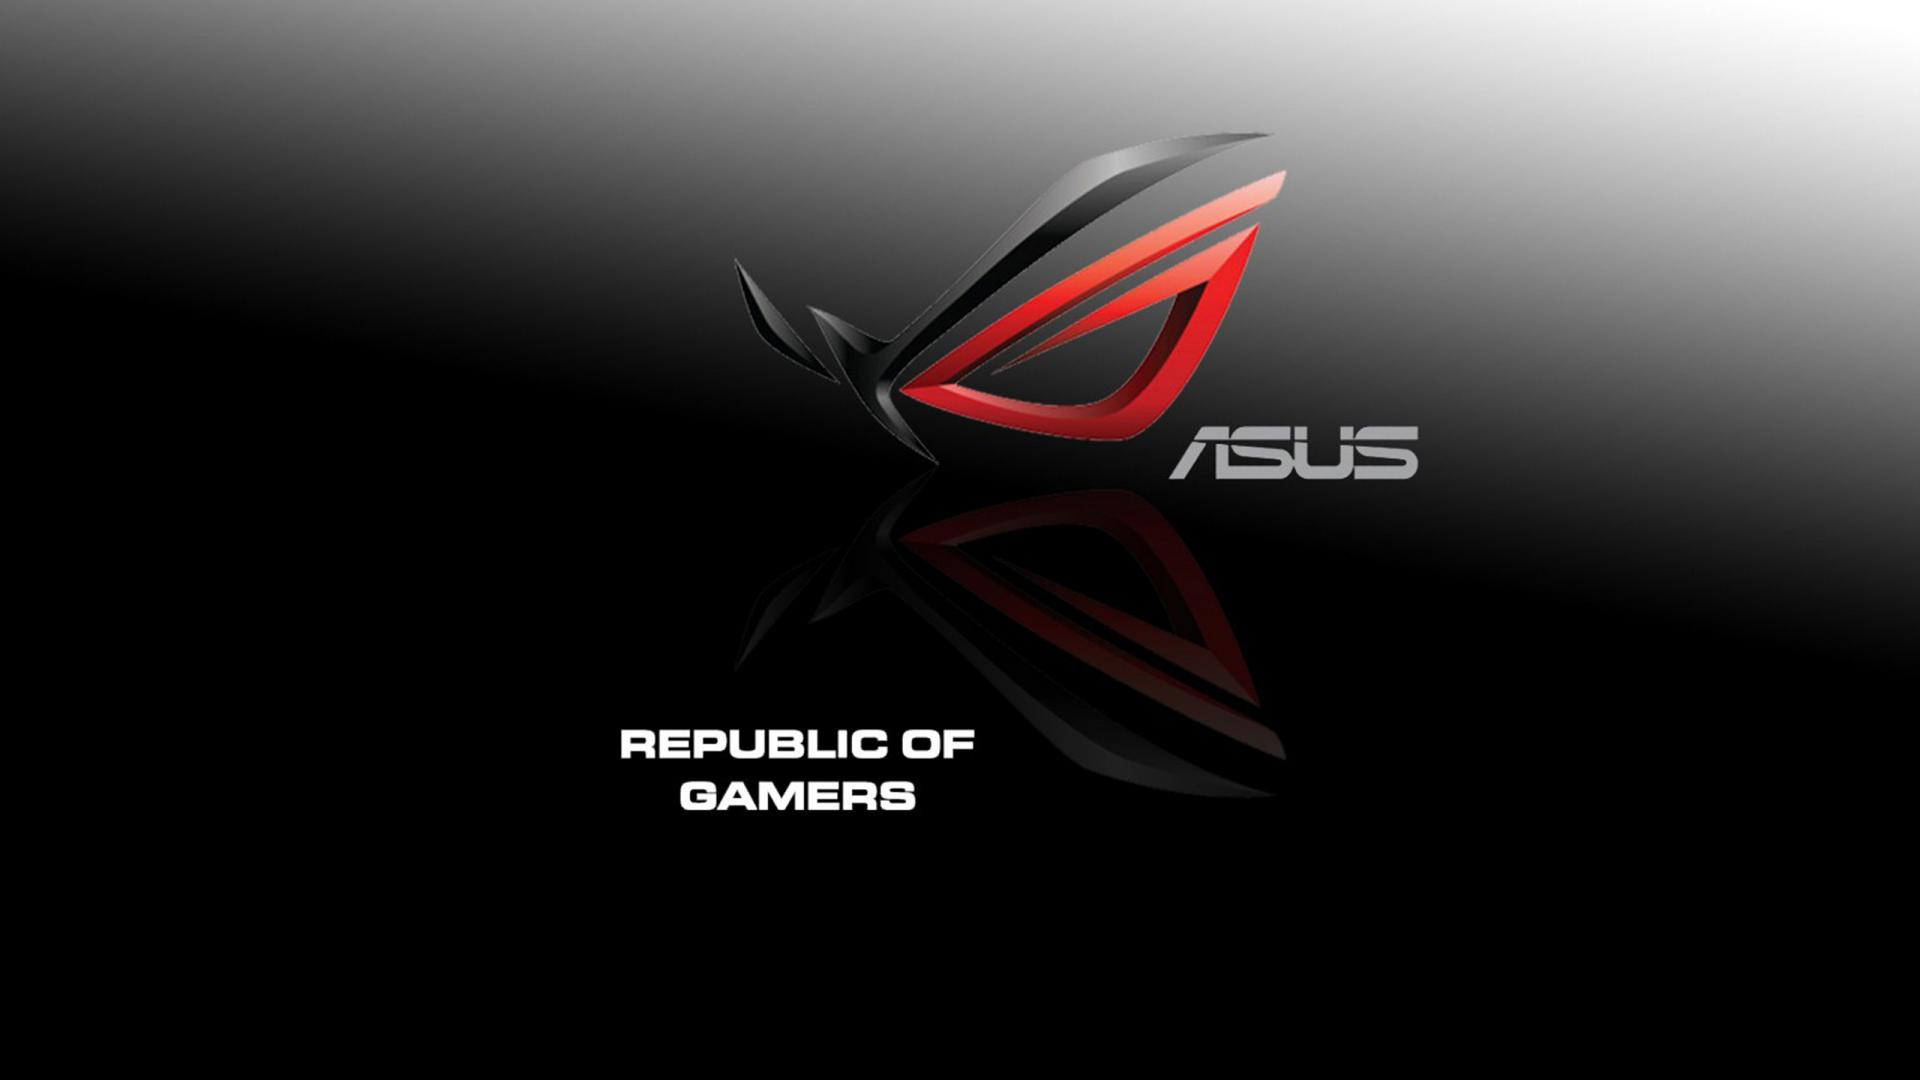 Asus Rog Wallpaper 1920x1080 Wallpapersafari